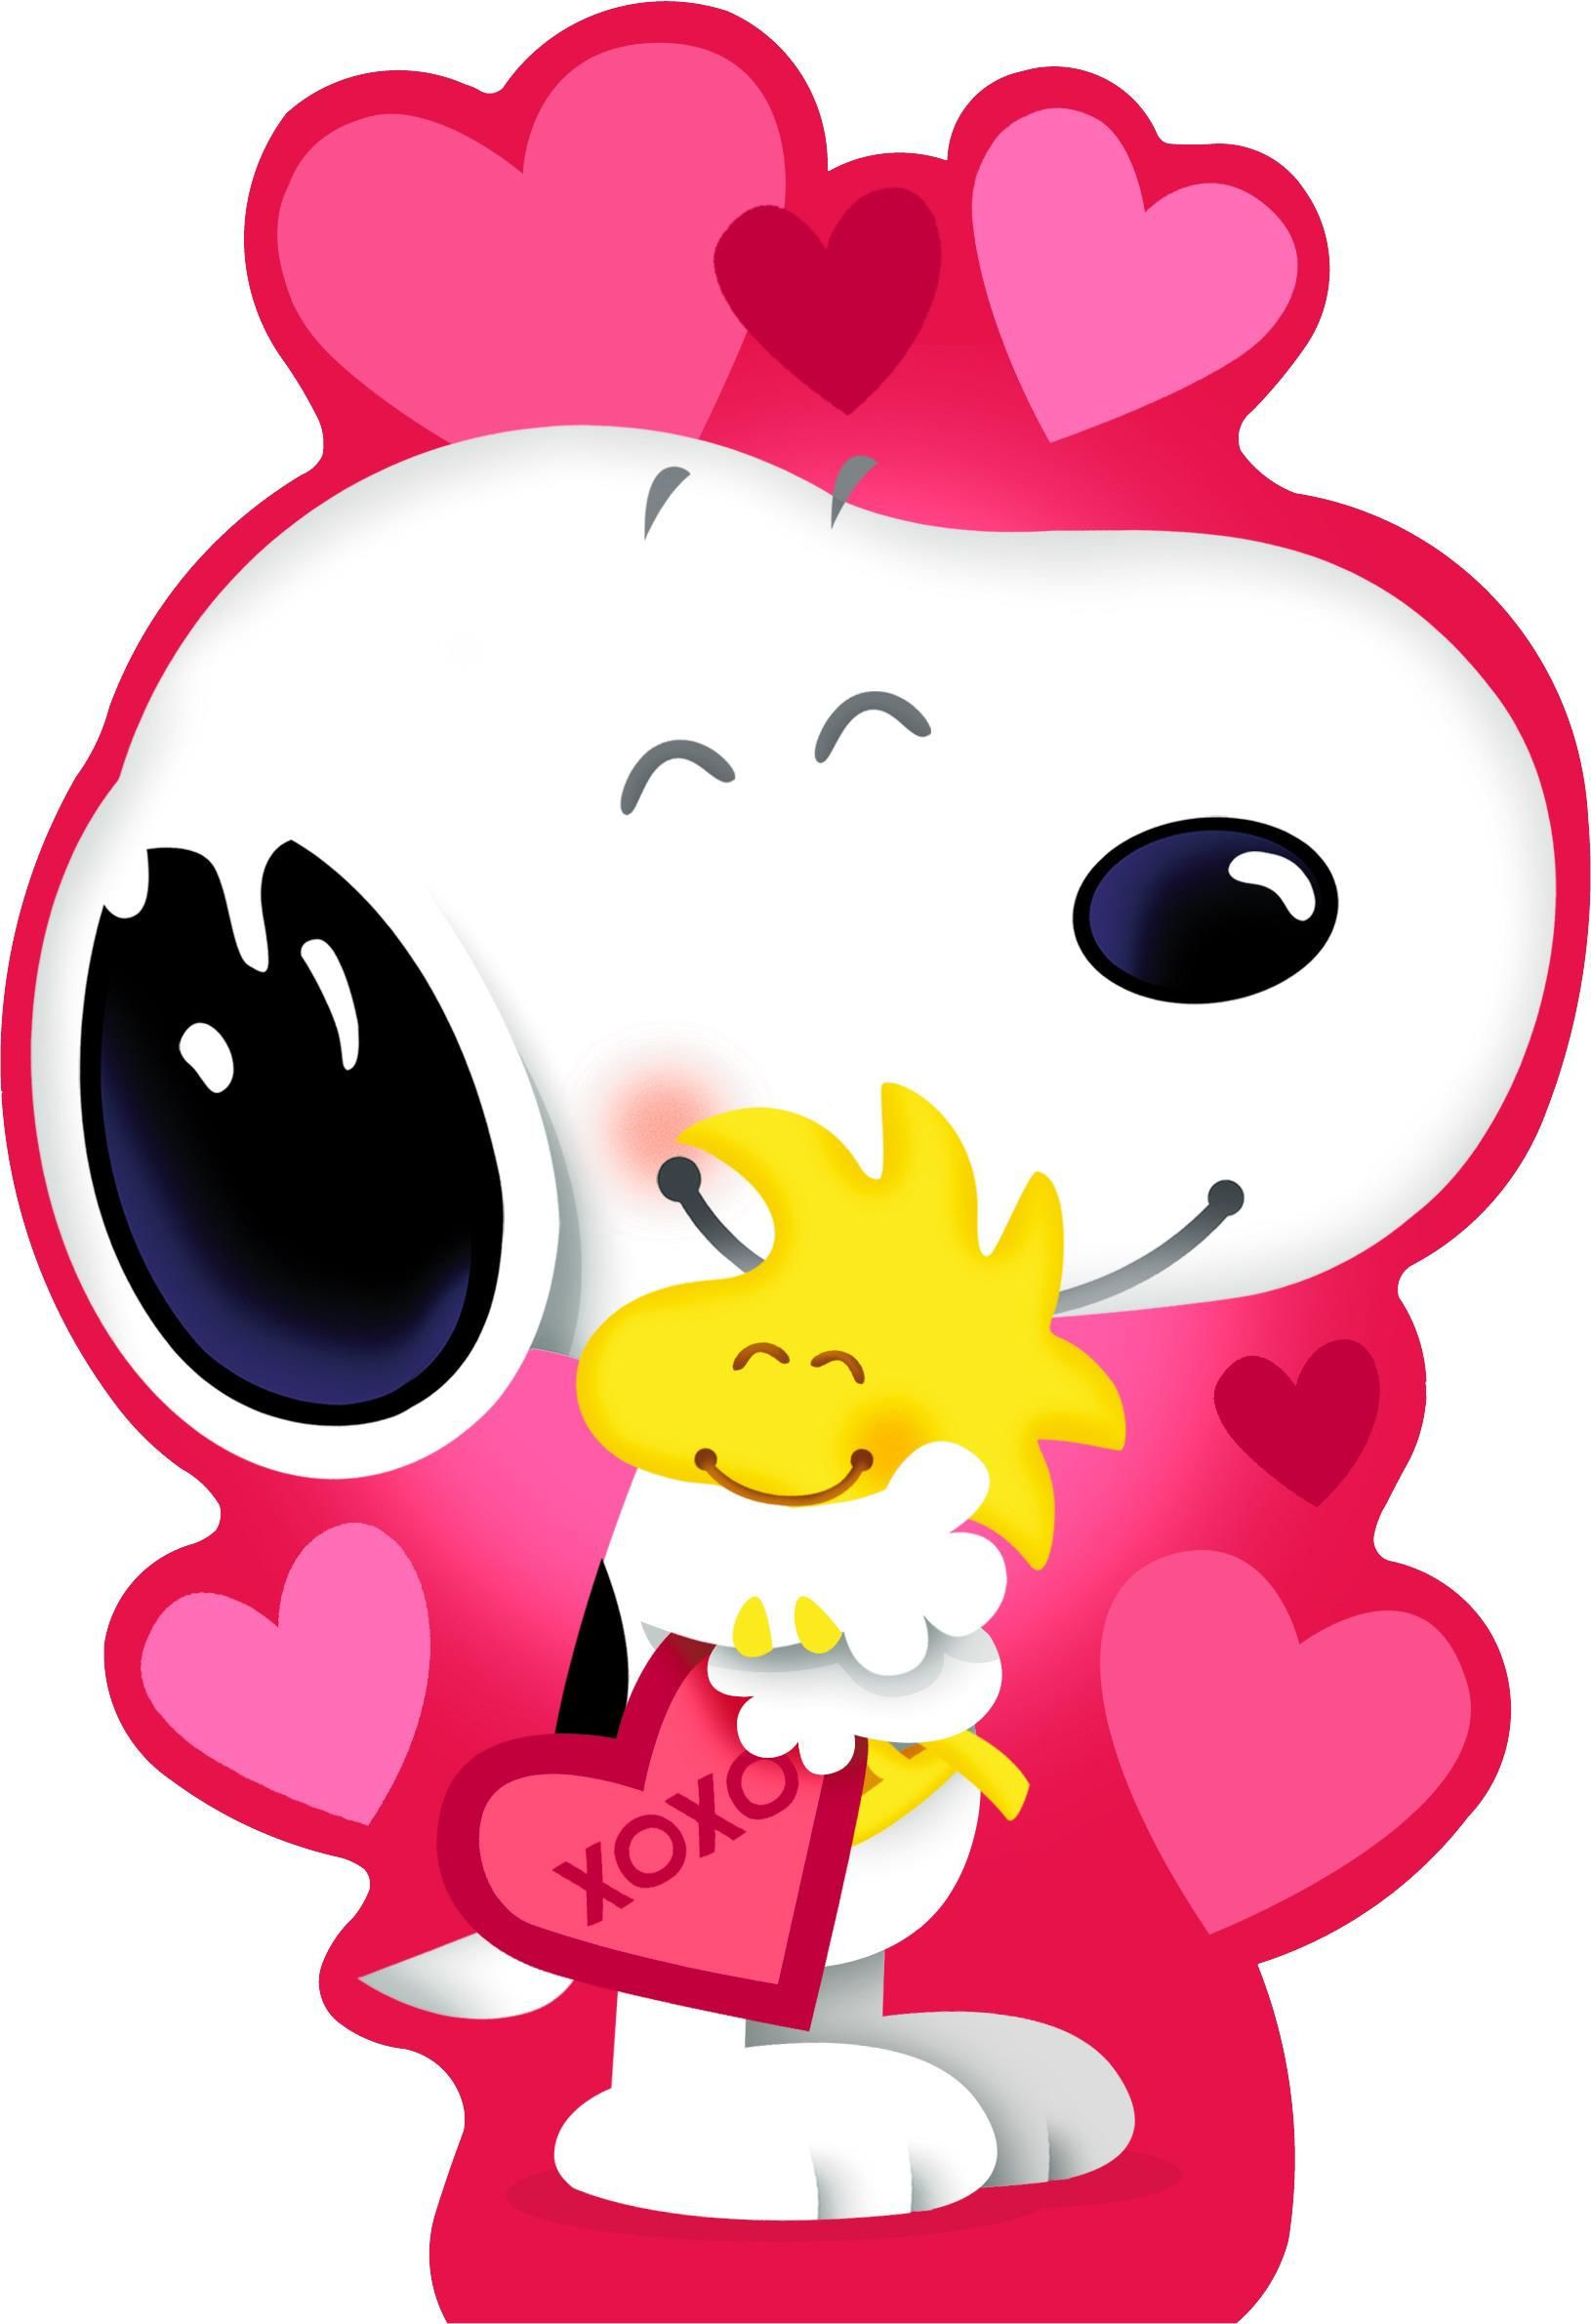 Snoopy Valentines Day Wallpaper (44+ Images